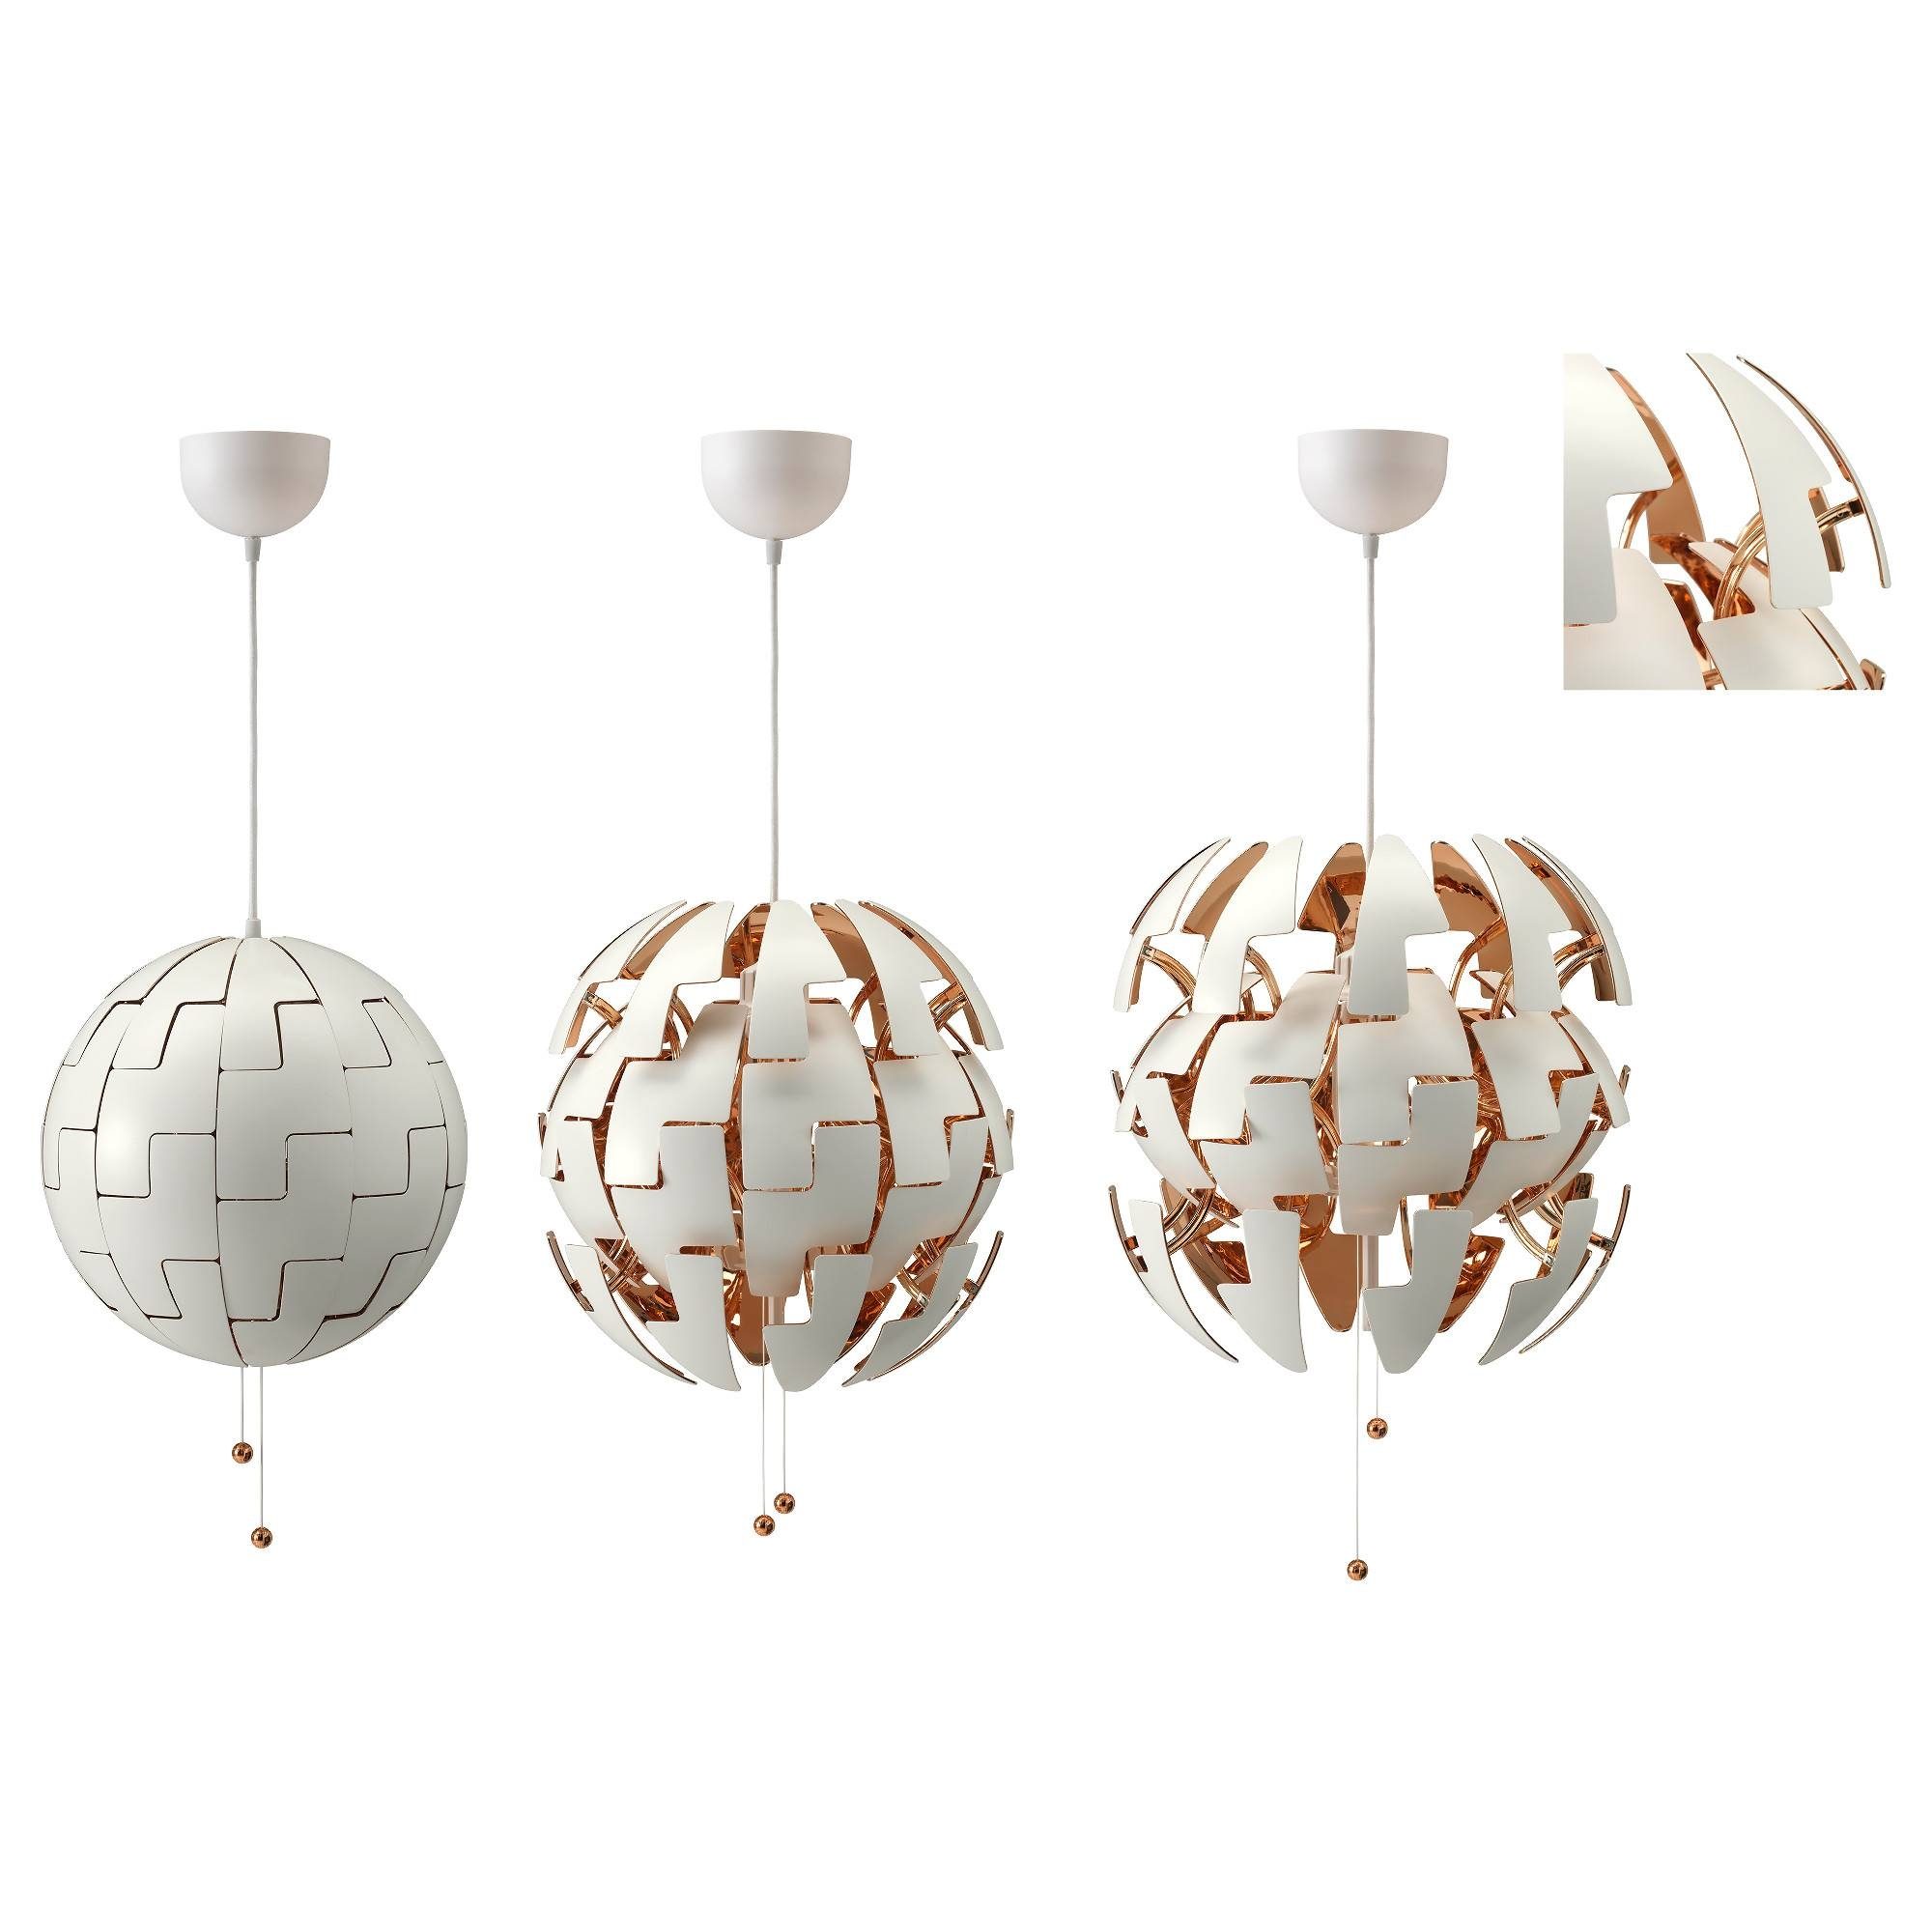 Ikea Ps 2014 Pendant Lamp White/copper-Colour - Ikea throughout Ikea Globe Pendant Lights (Image 8 of 15)